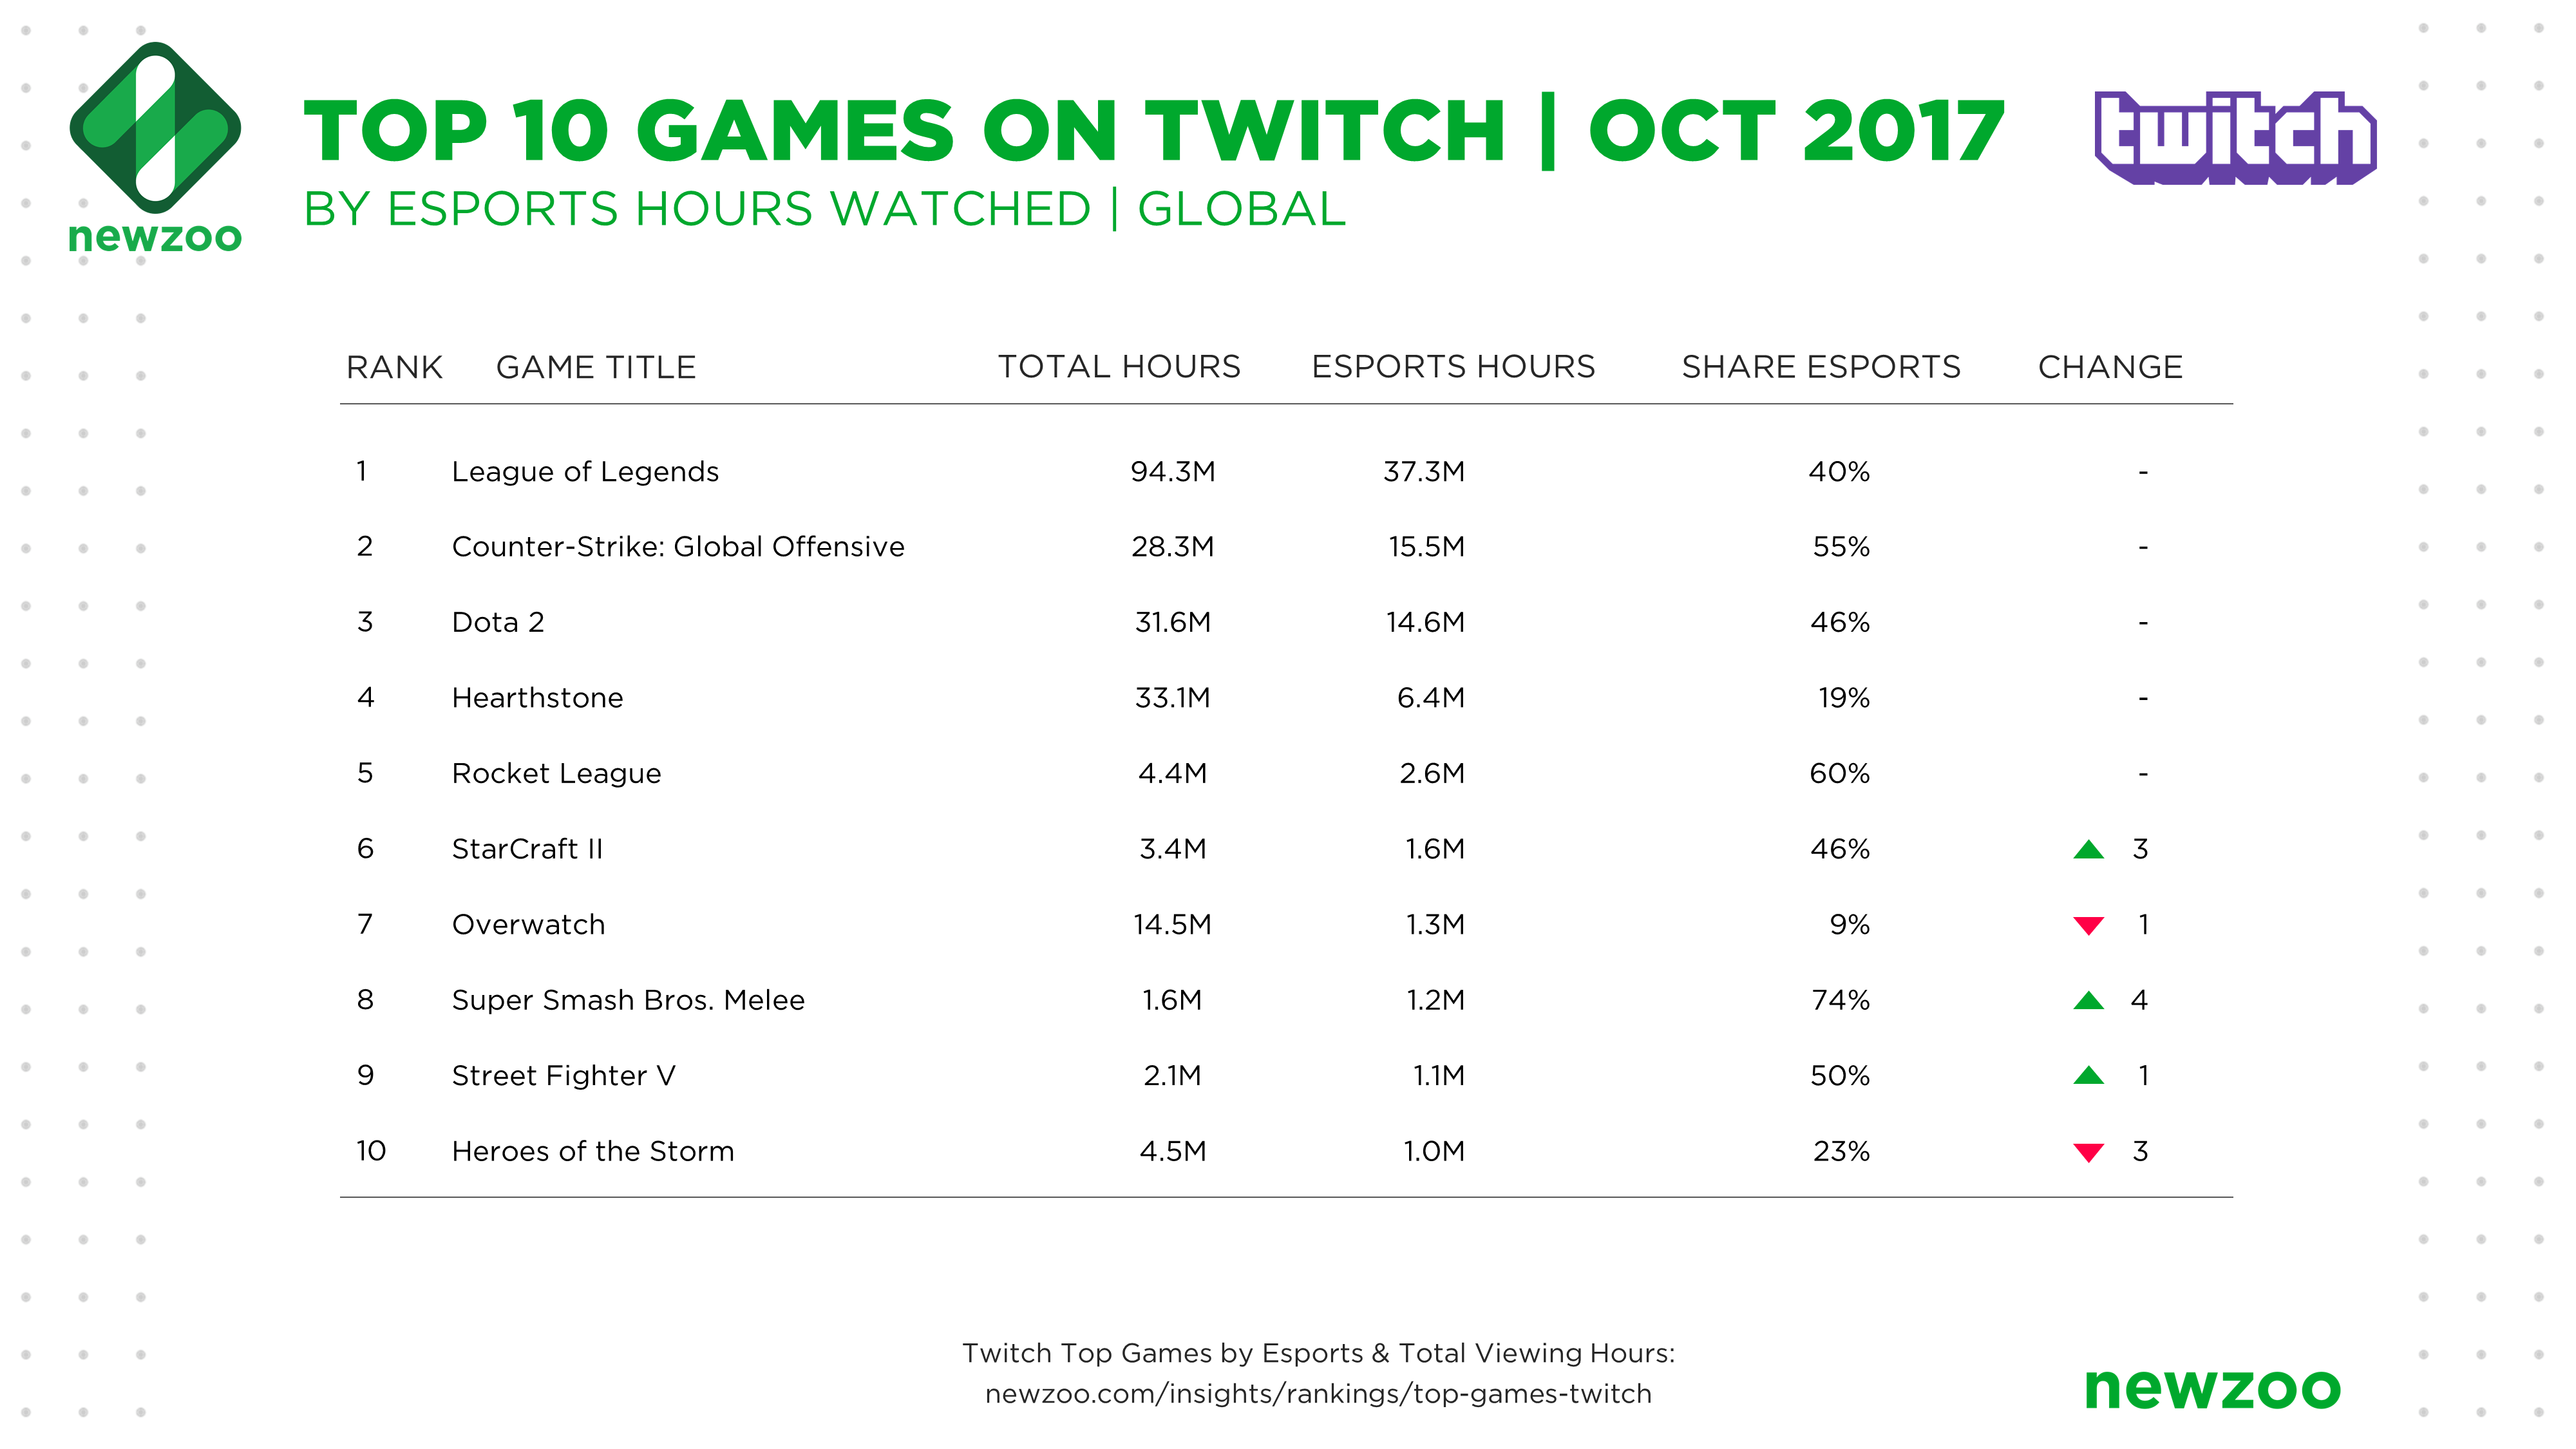 Top games by twitch viewers